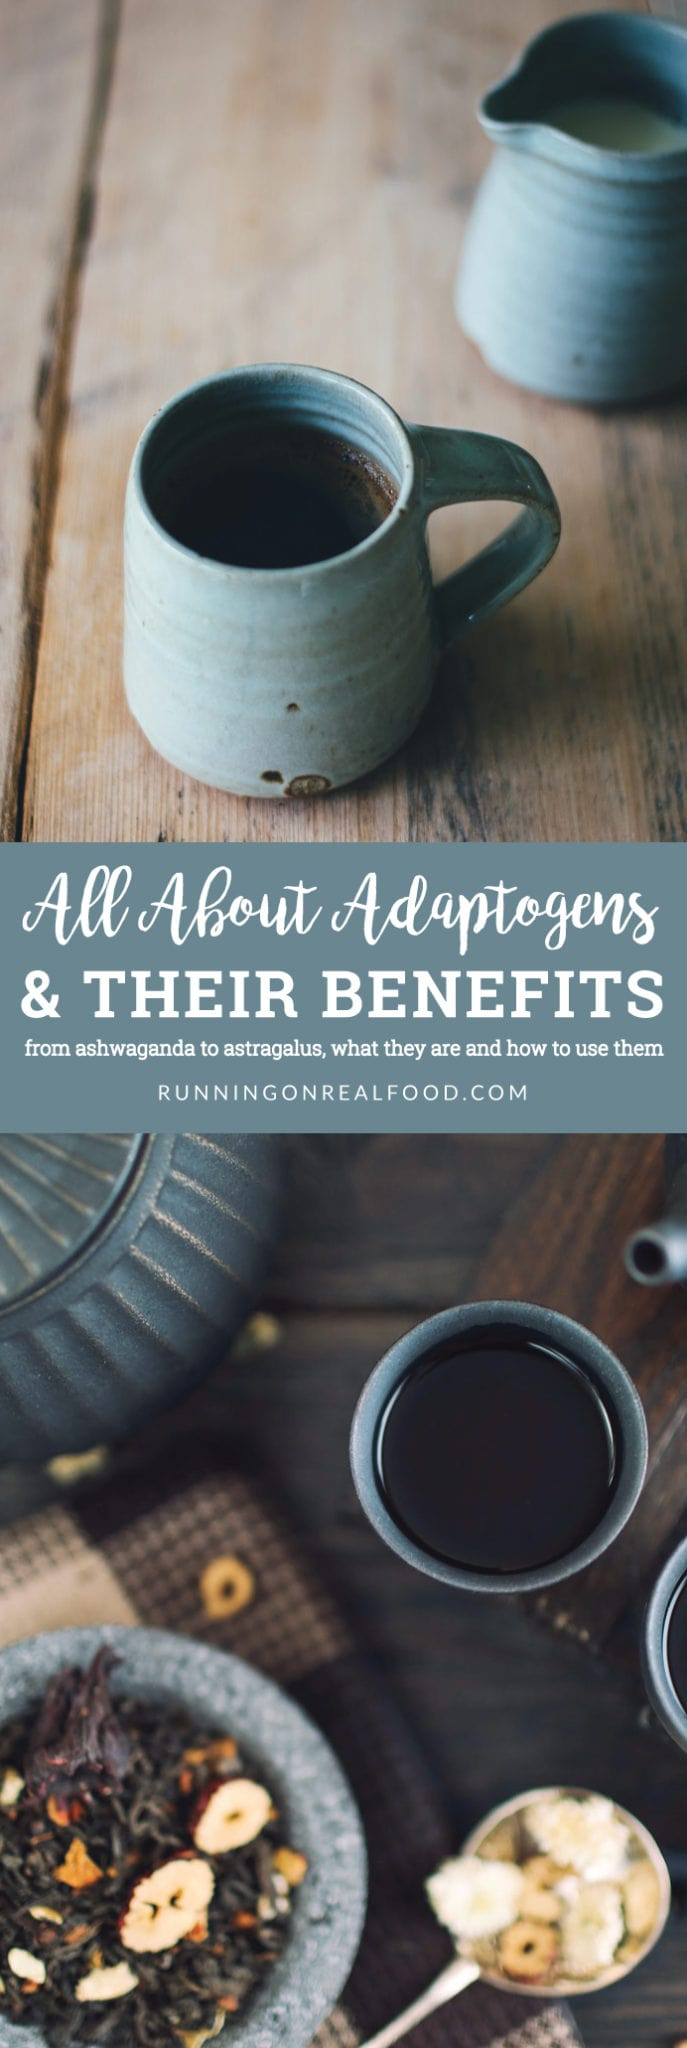 Maca, ashwaganda, astragalus, rhodiola, holy basil and more. Learn all about adaptogens and which ones are best for sleep, stress, fatigue, libido, energy, mood, cognitive function and other issues.